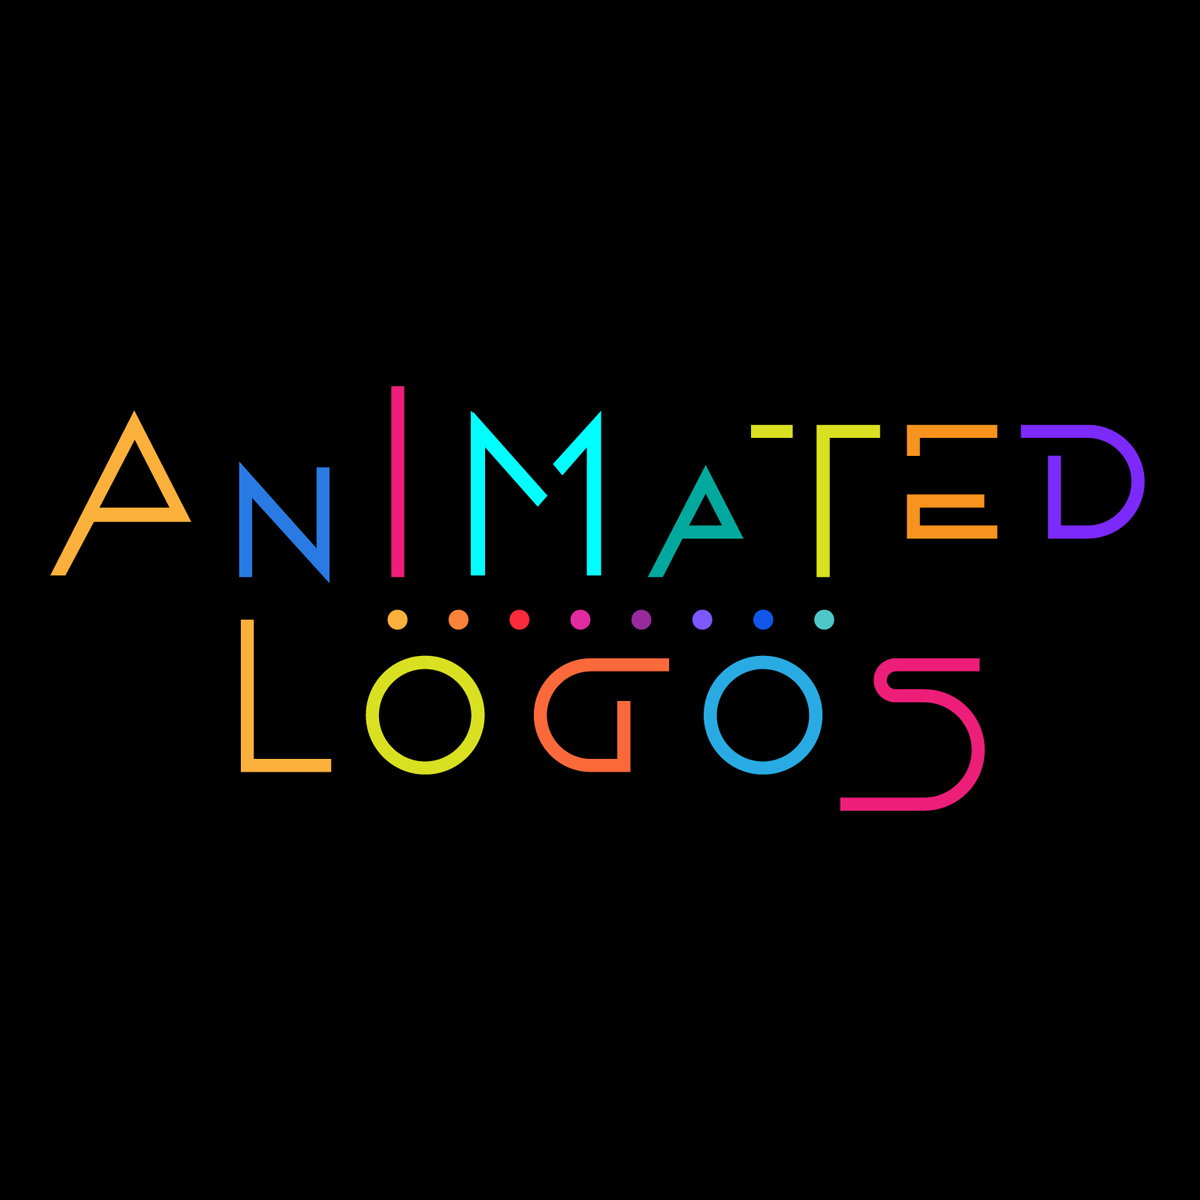 Animated Logos Celebrate Movement